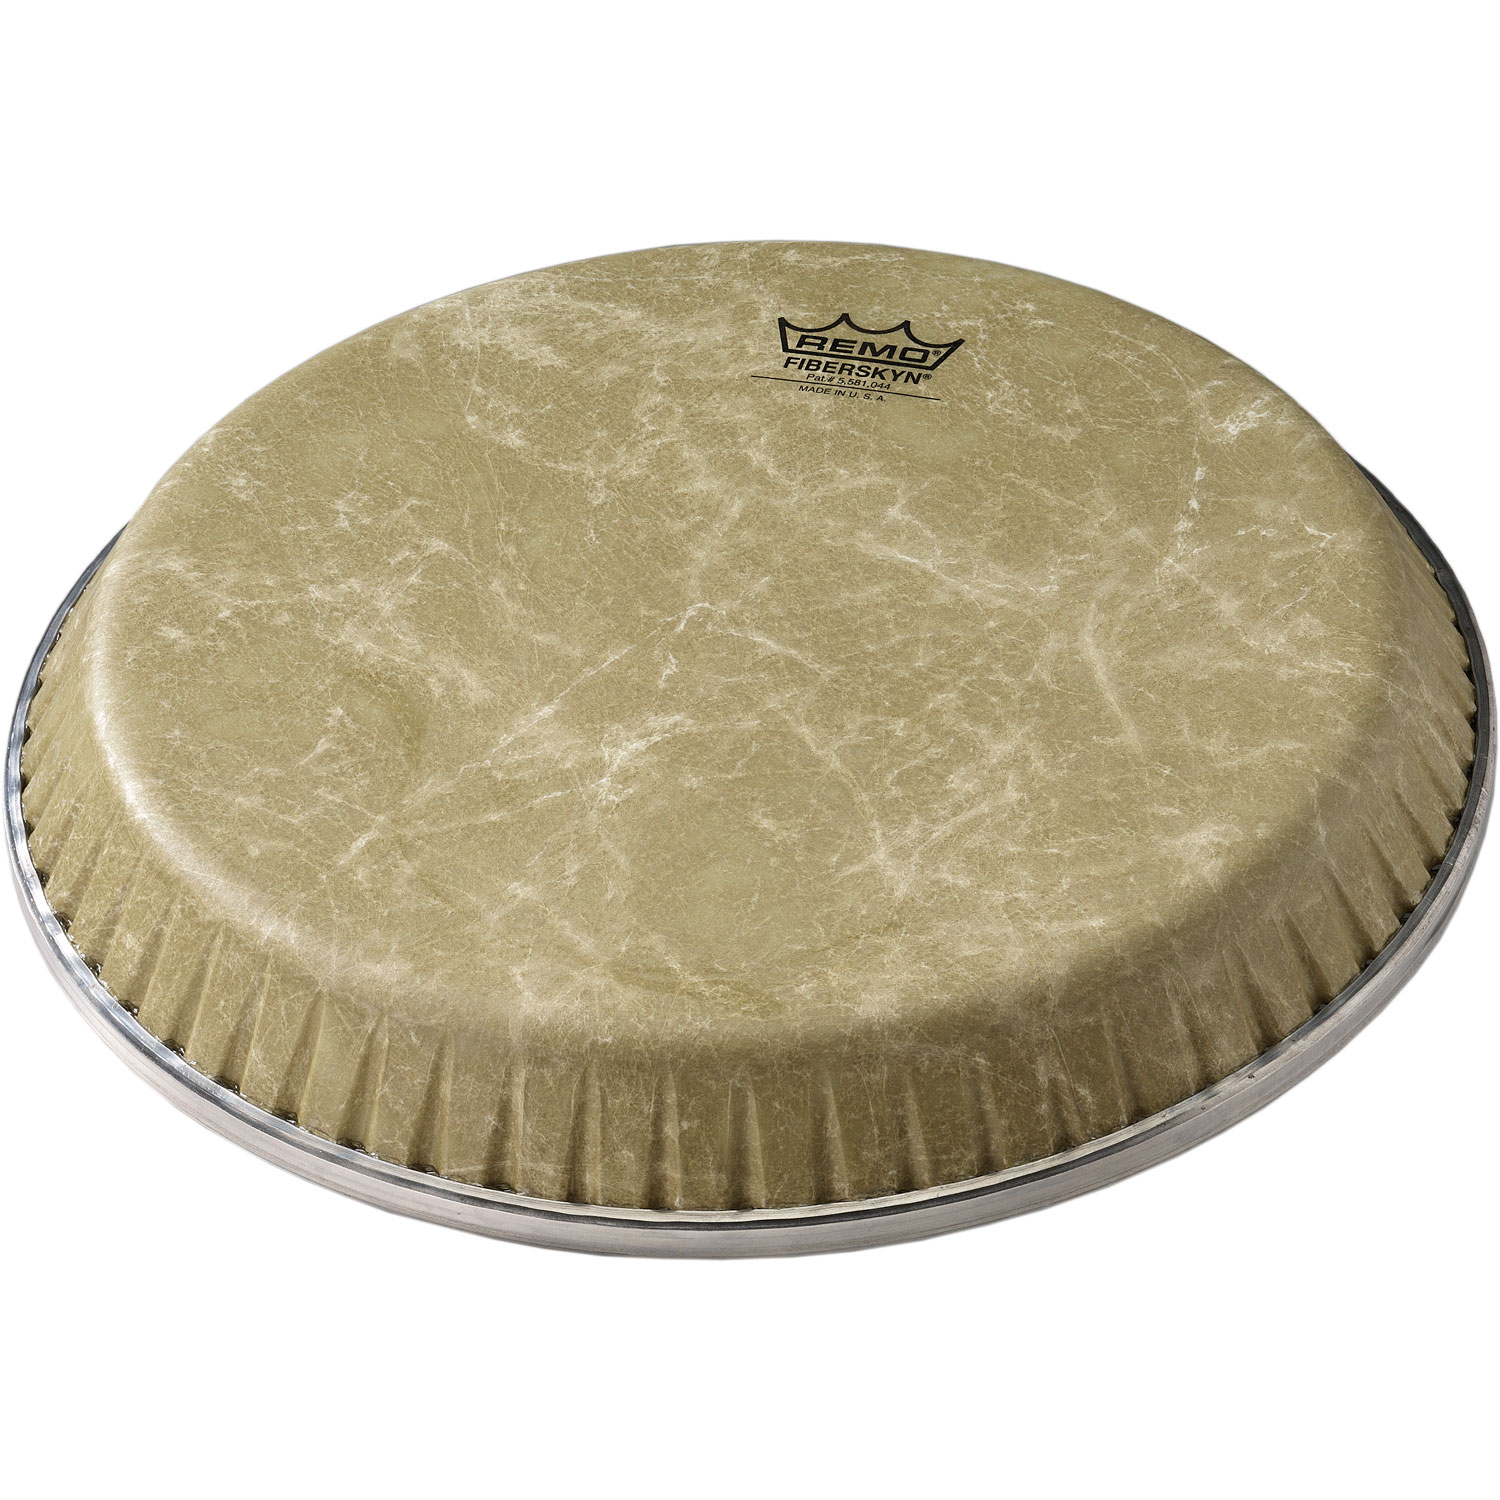 "Remo 9.75"" Symmetry Fiberskyn Conga Drum Head (D2 Collar)"